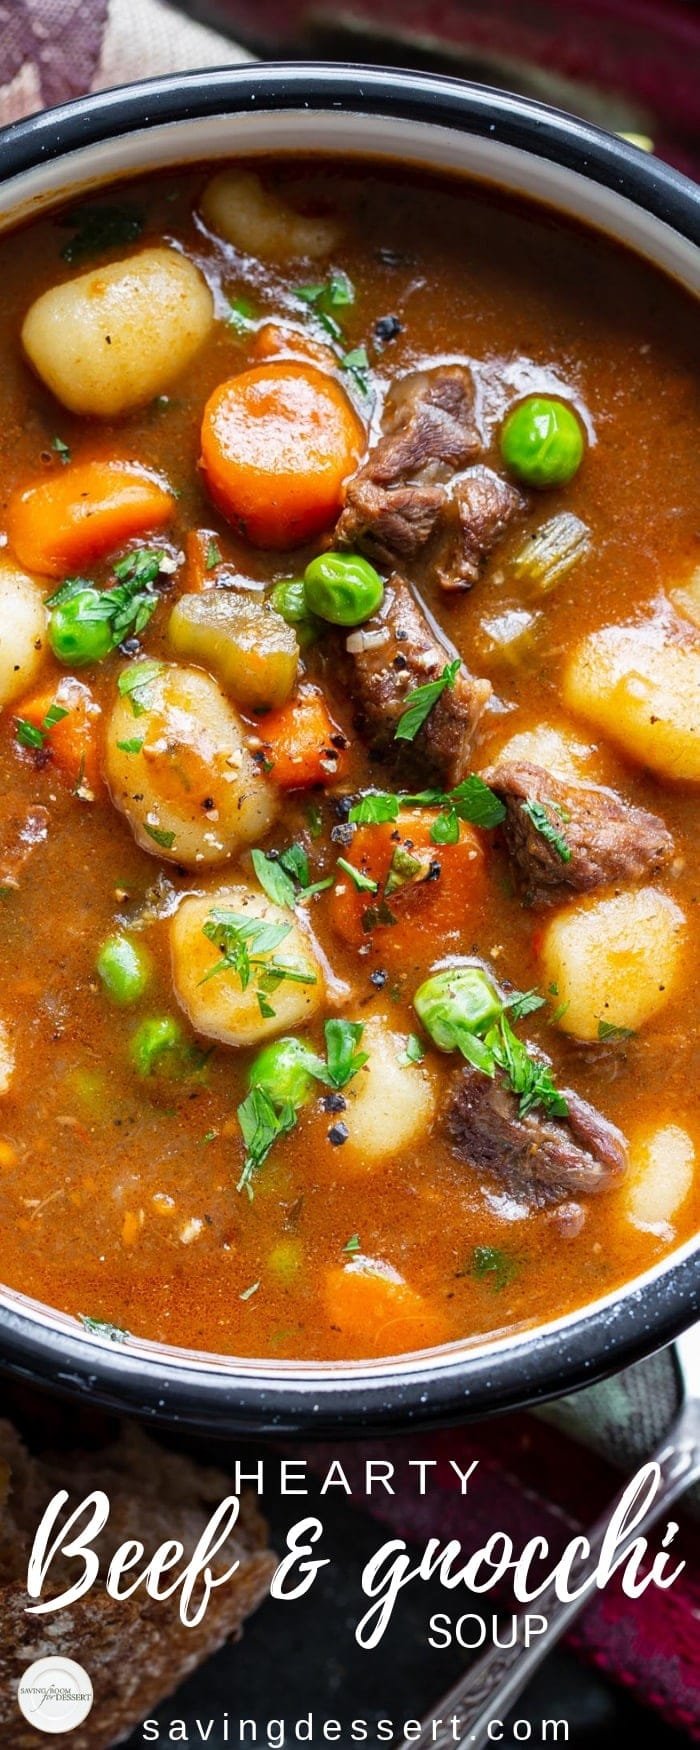 Hearty Beef and Gnocchi Soup is a warming and delicious chunky soup worthy of an entire meal. Serve with crusty bread to sop up all the delicious broth! #savingroomfordessert #heartystew #heartysoup #soup #beefsoup #vegetablebeefsoup #gnocchisoup